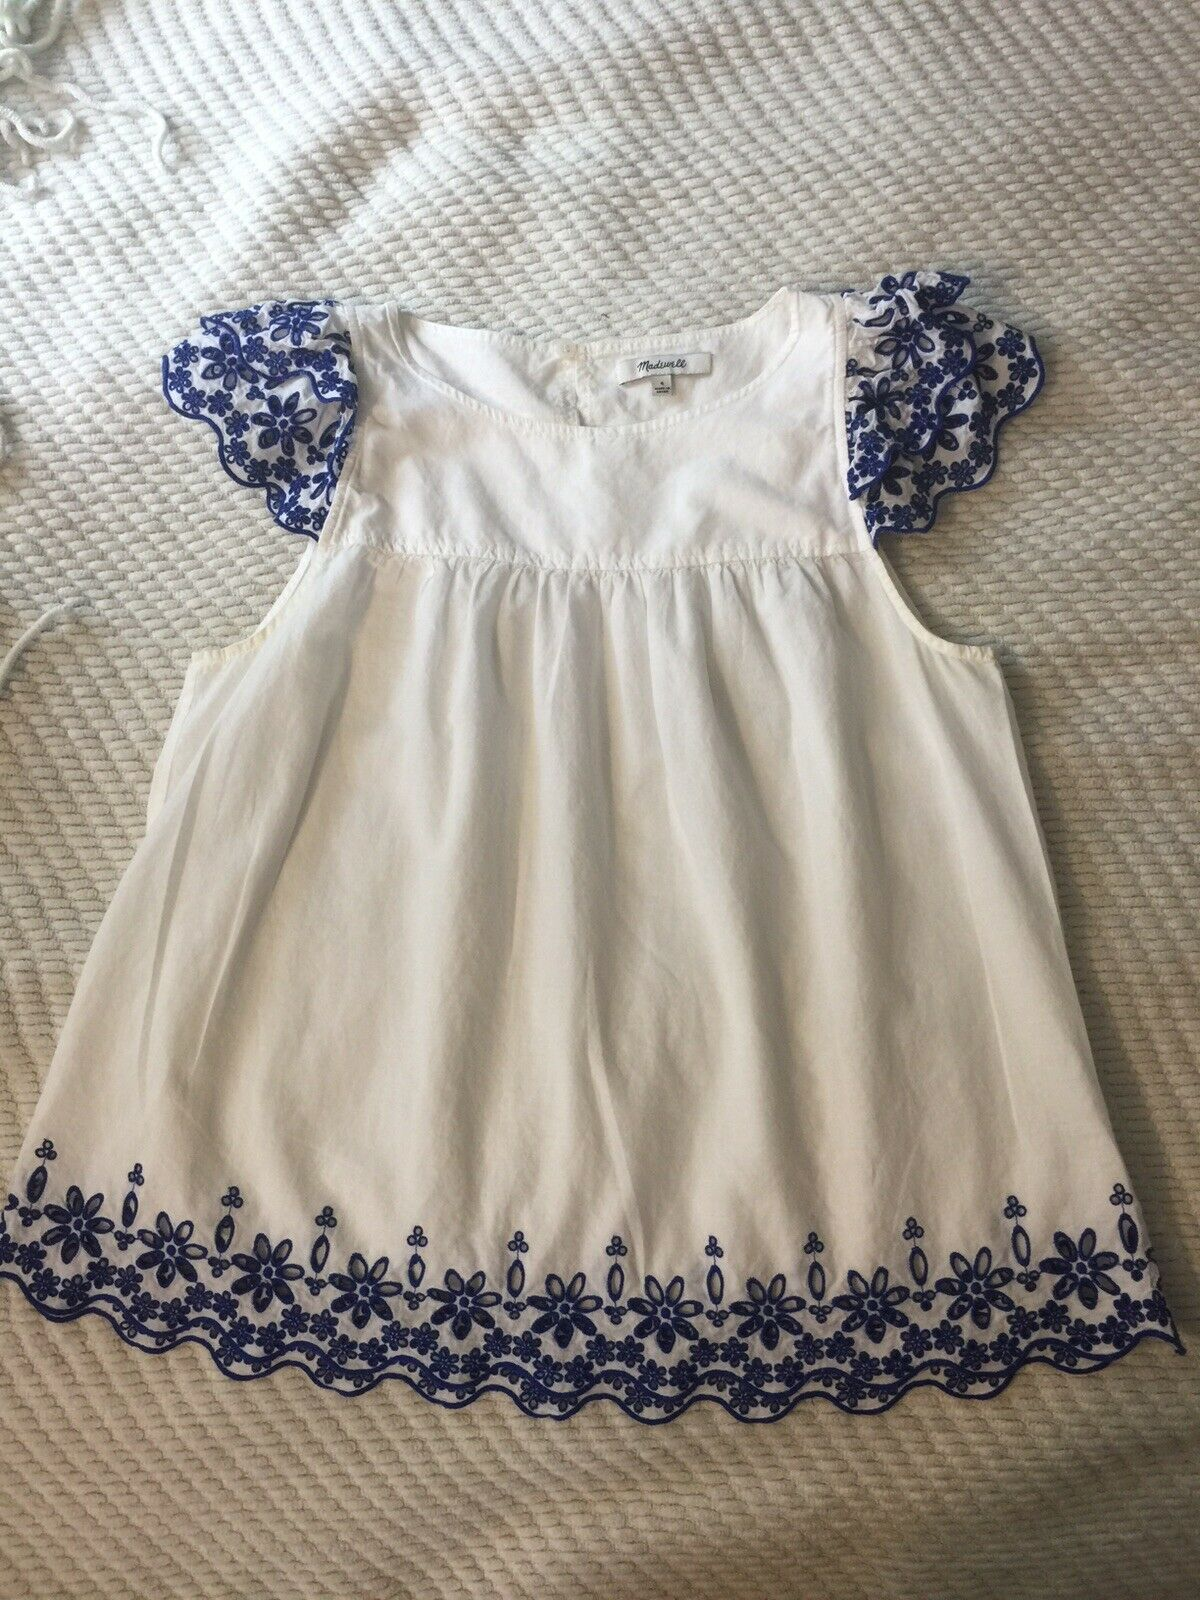 Madewell White Cotton Top Blue Eyelet Sleeves 4 - image 1